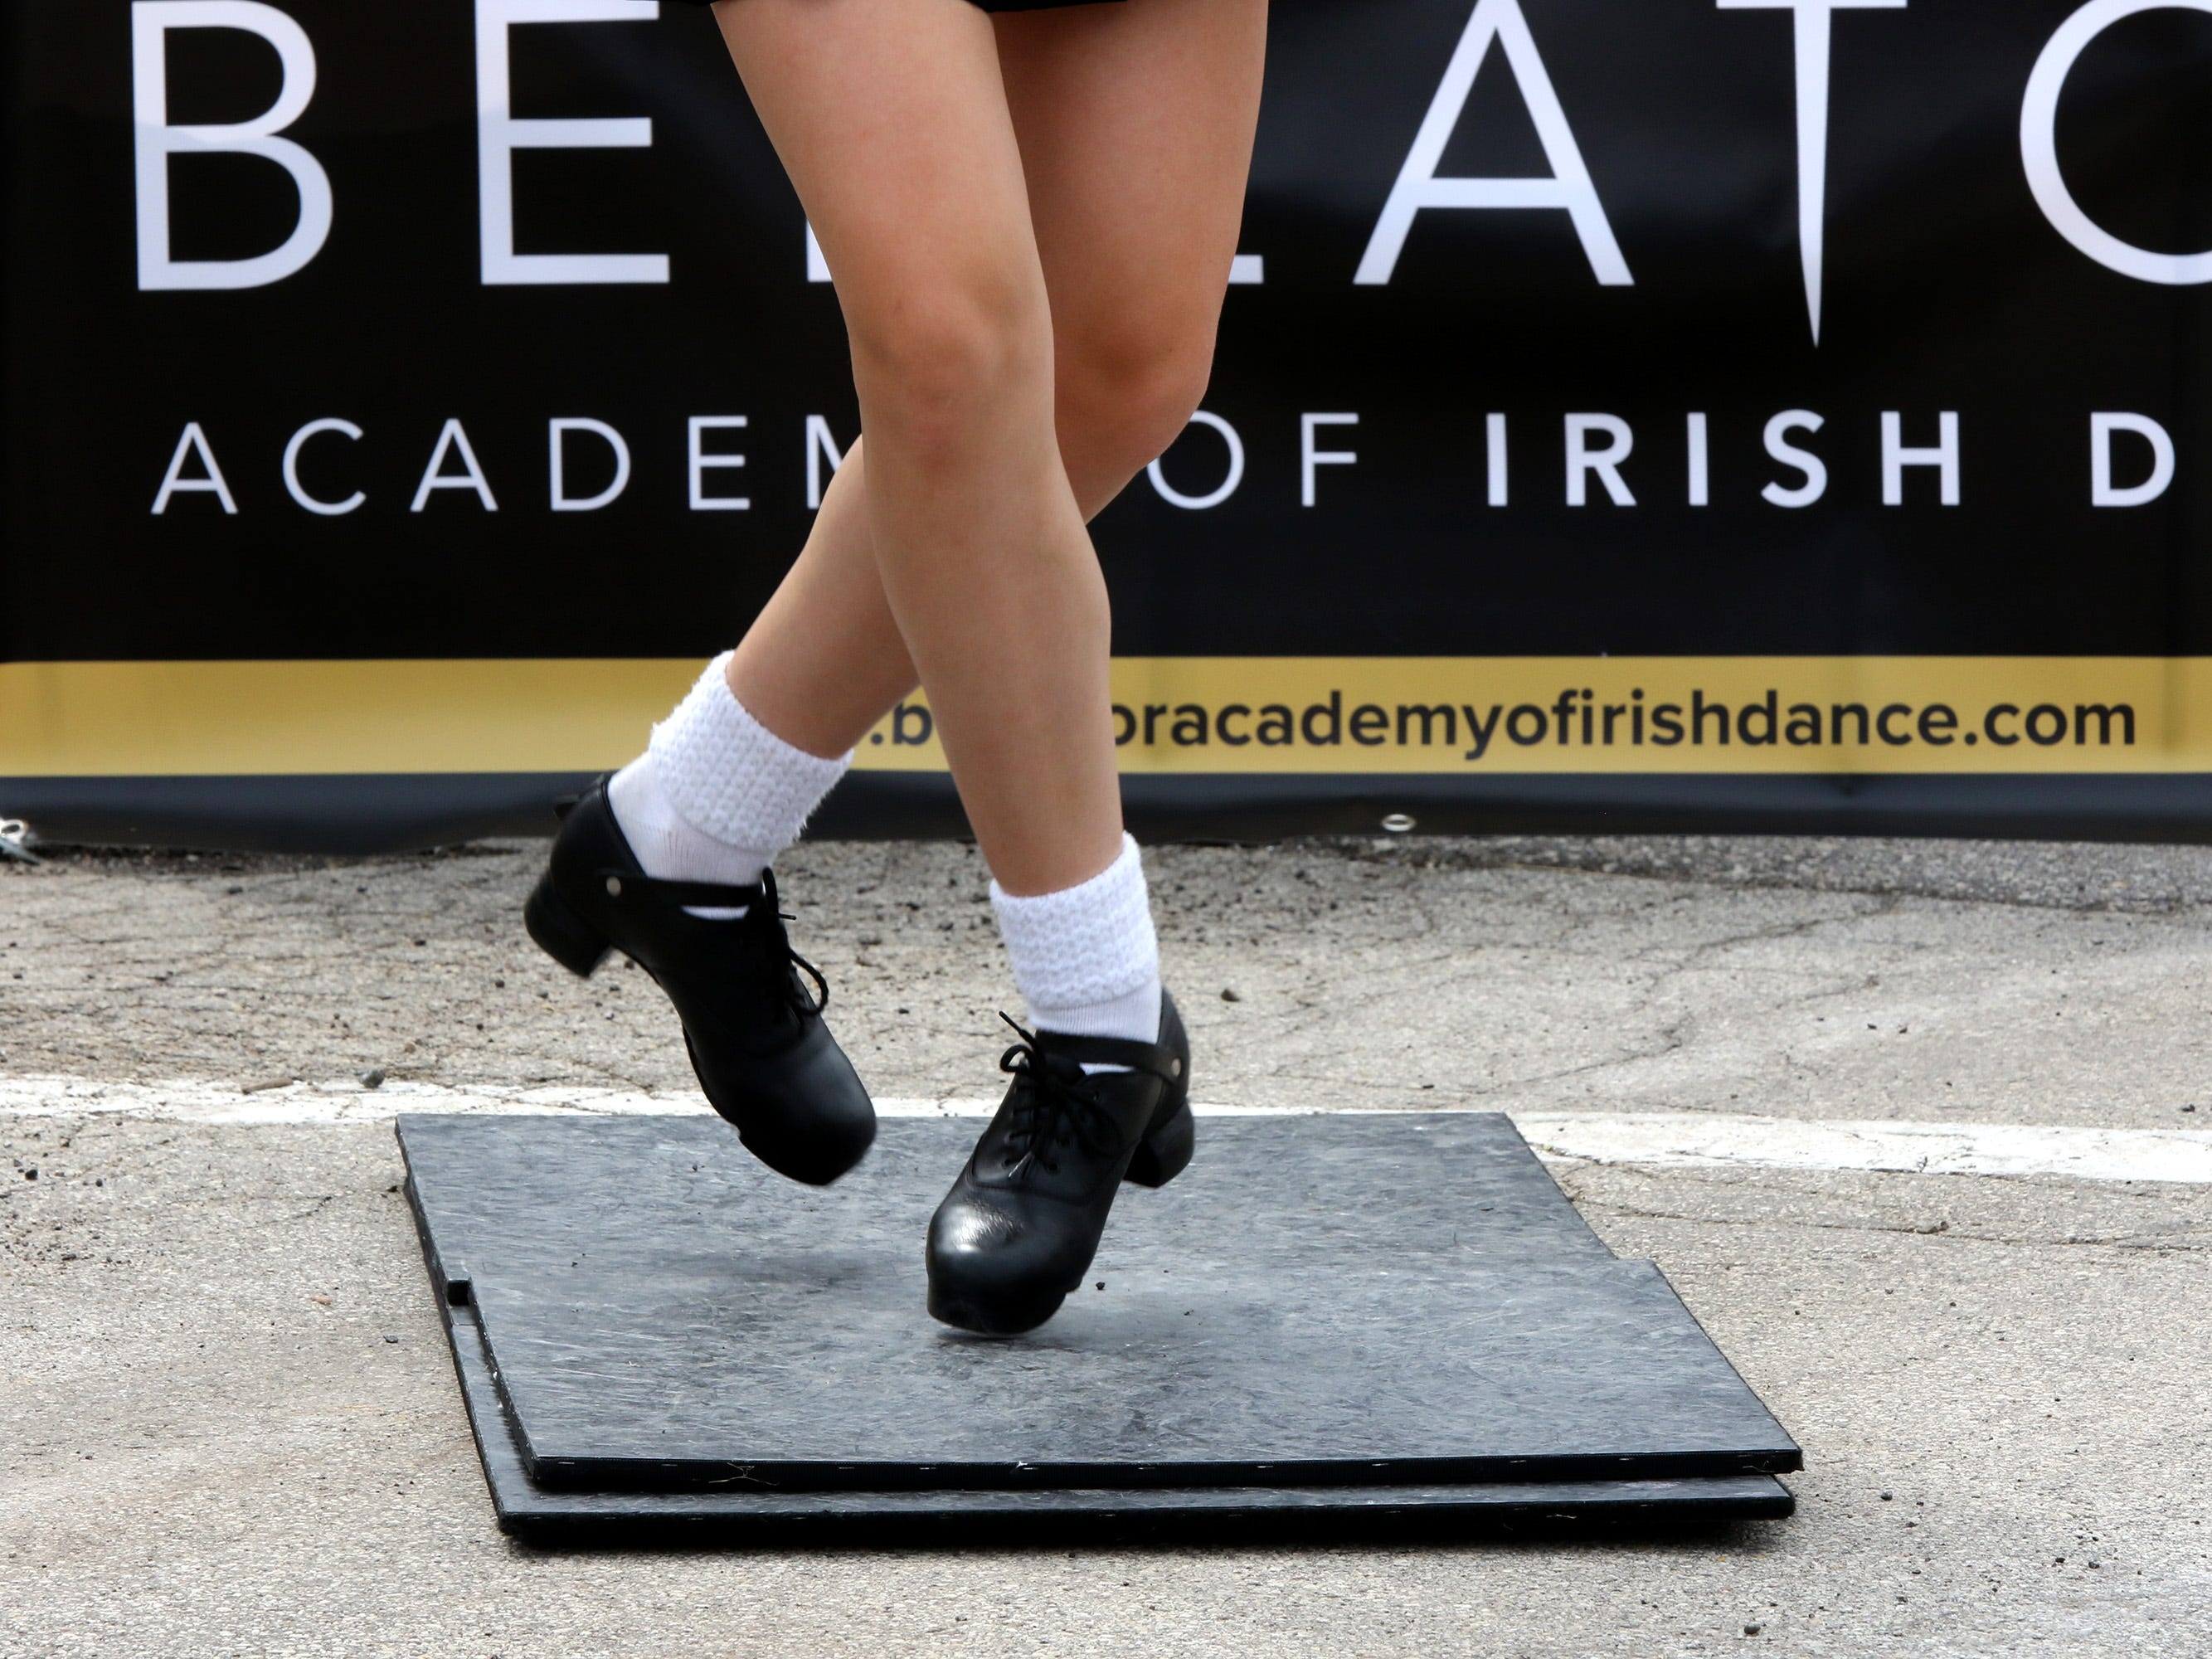 Callie Johnson of Mequon, a student of Bellator Academy of Irish Dance, demonstrates a dance step during the sixth annual Taste of Mequon in the vicinity of City Hall and on Cedarburg Road on Sept. 8.